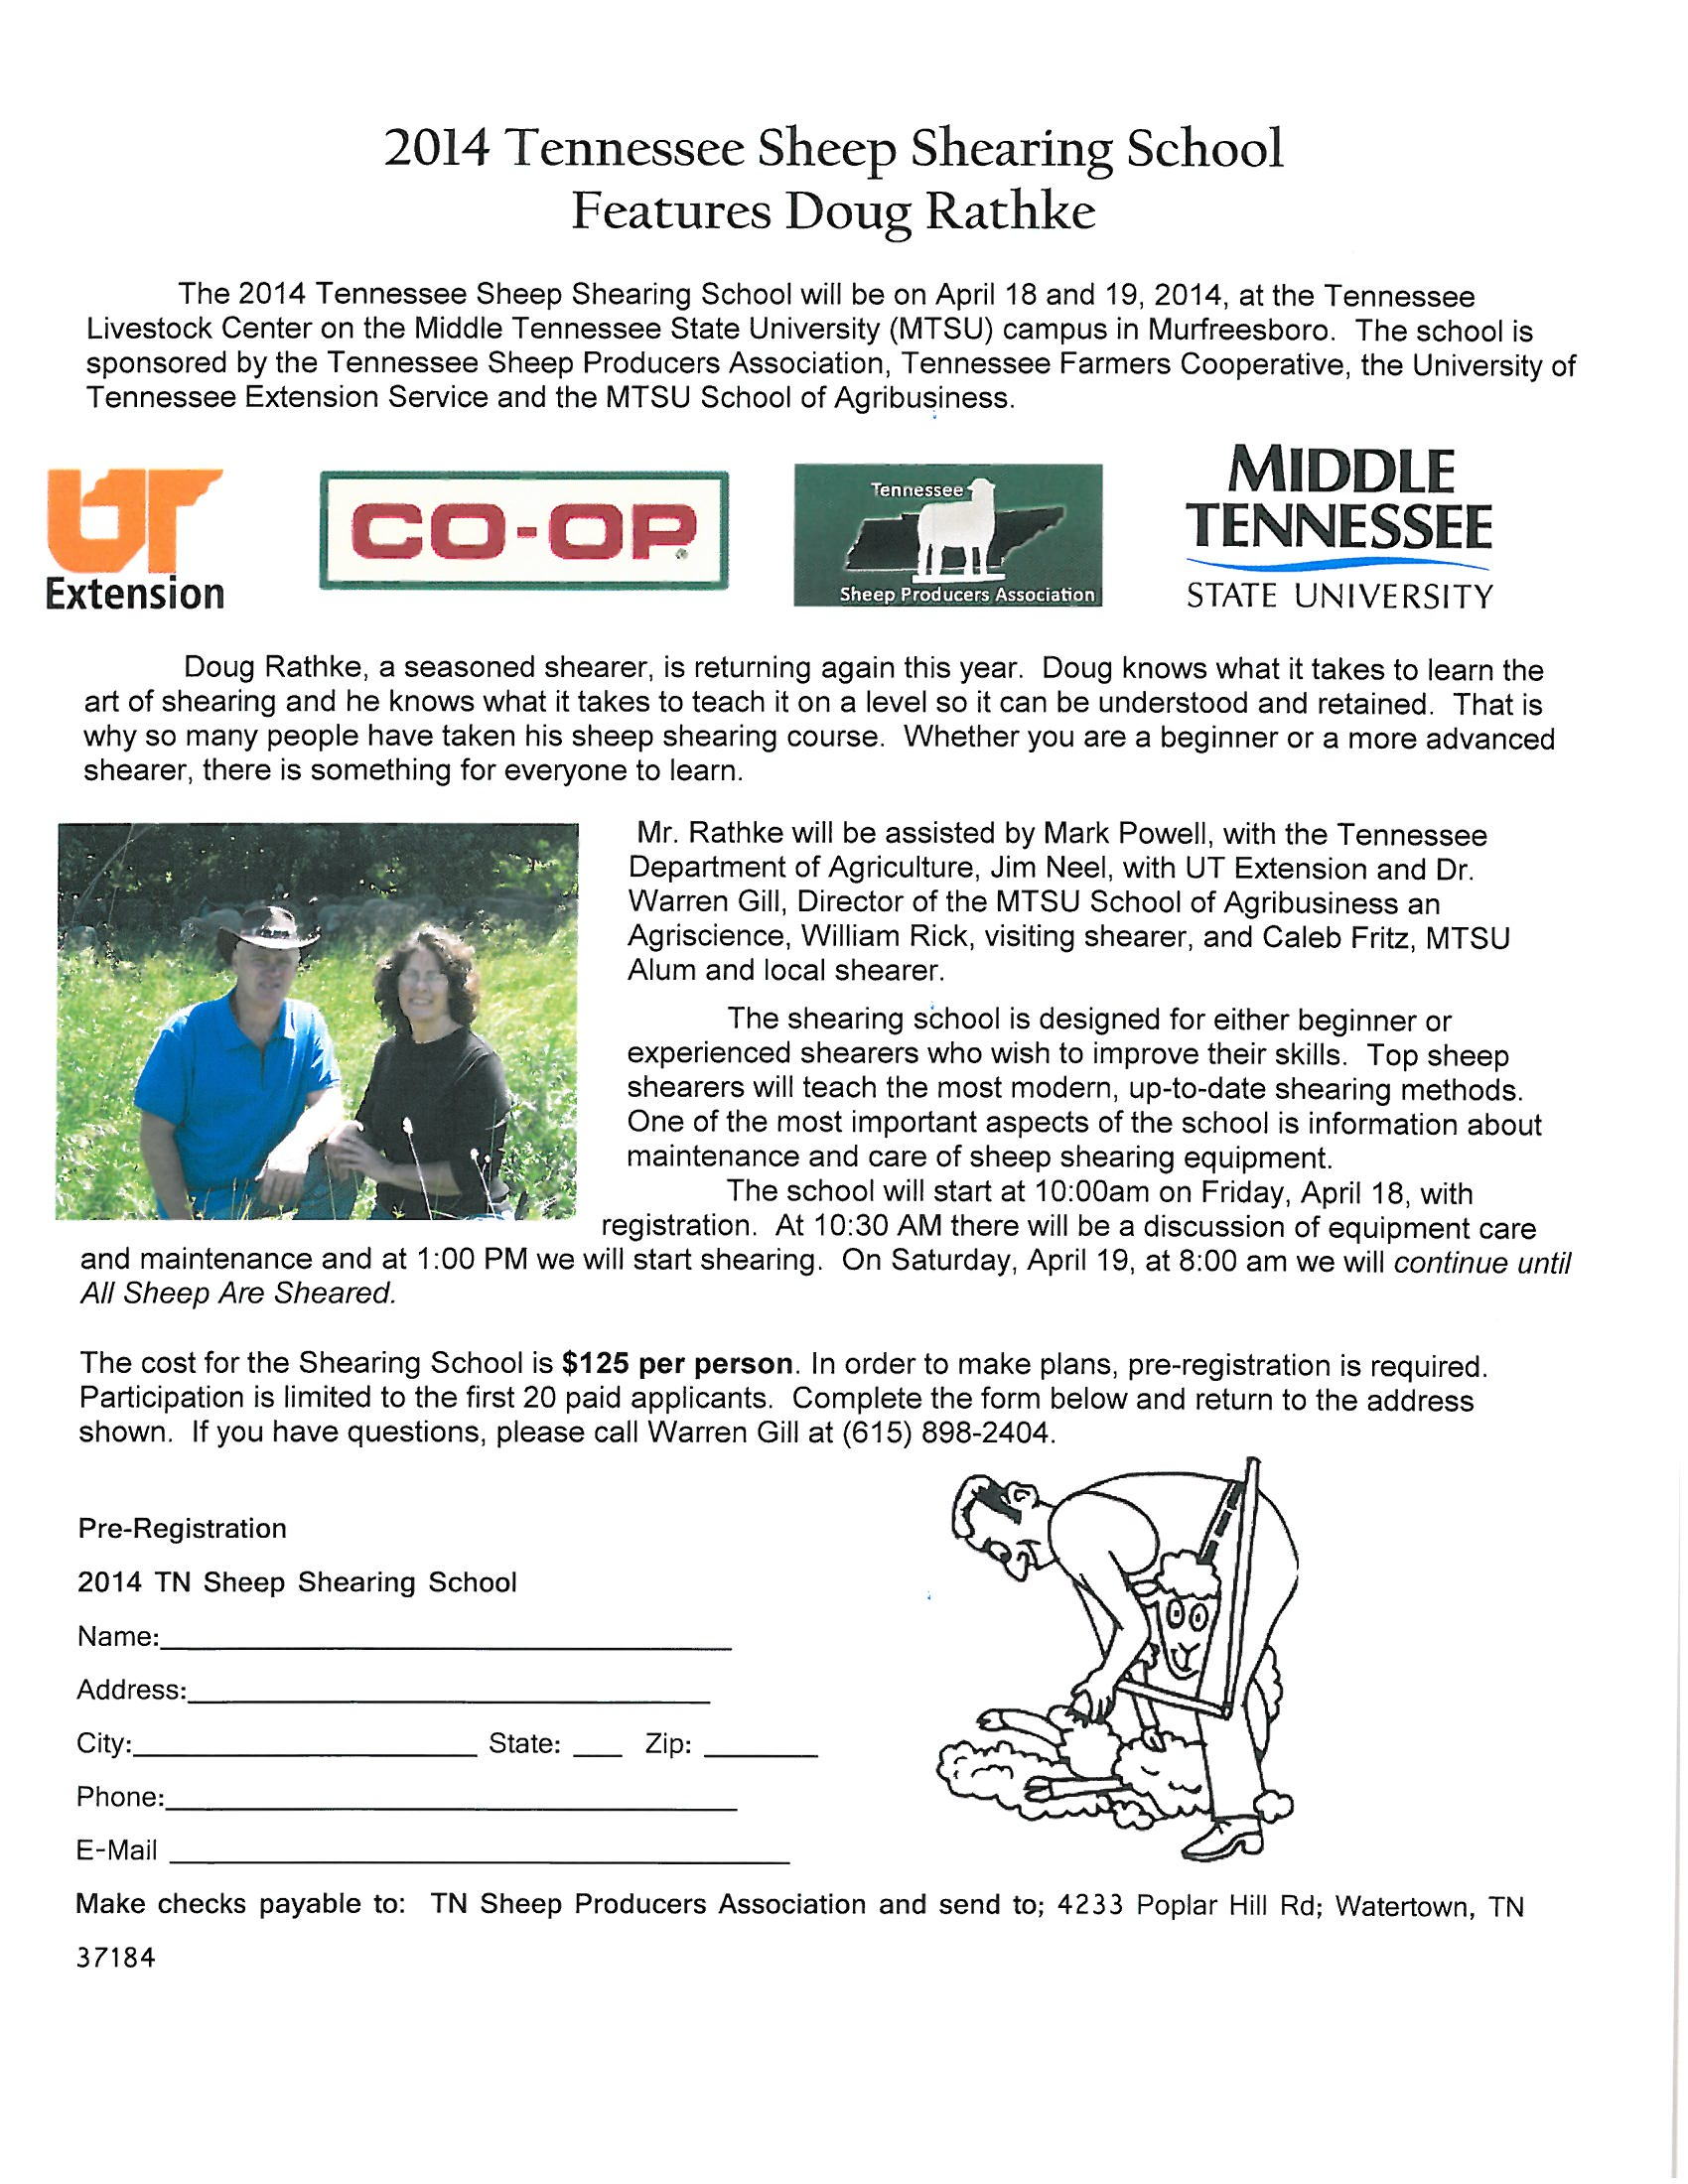 2014 Tennessee Sheep Shearing School Features Doug Rathke